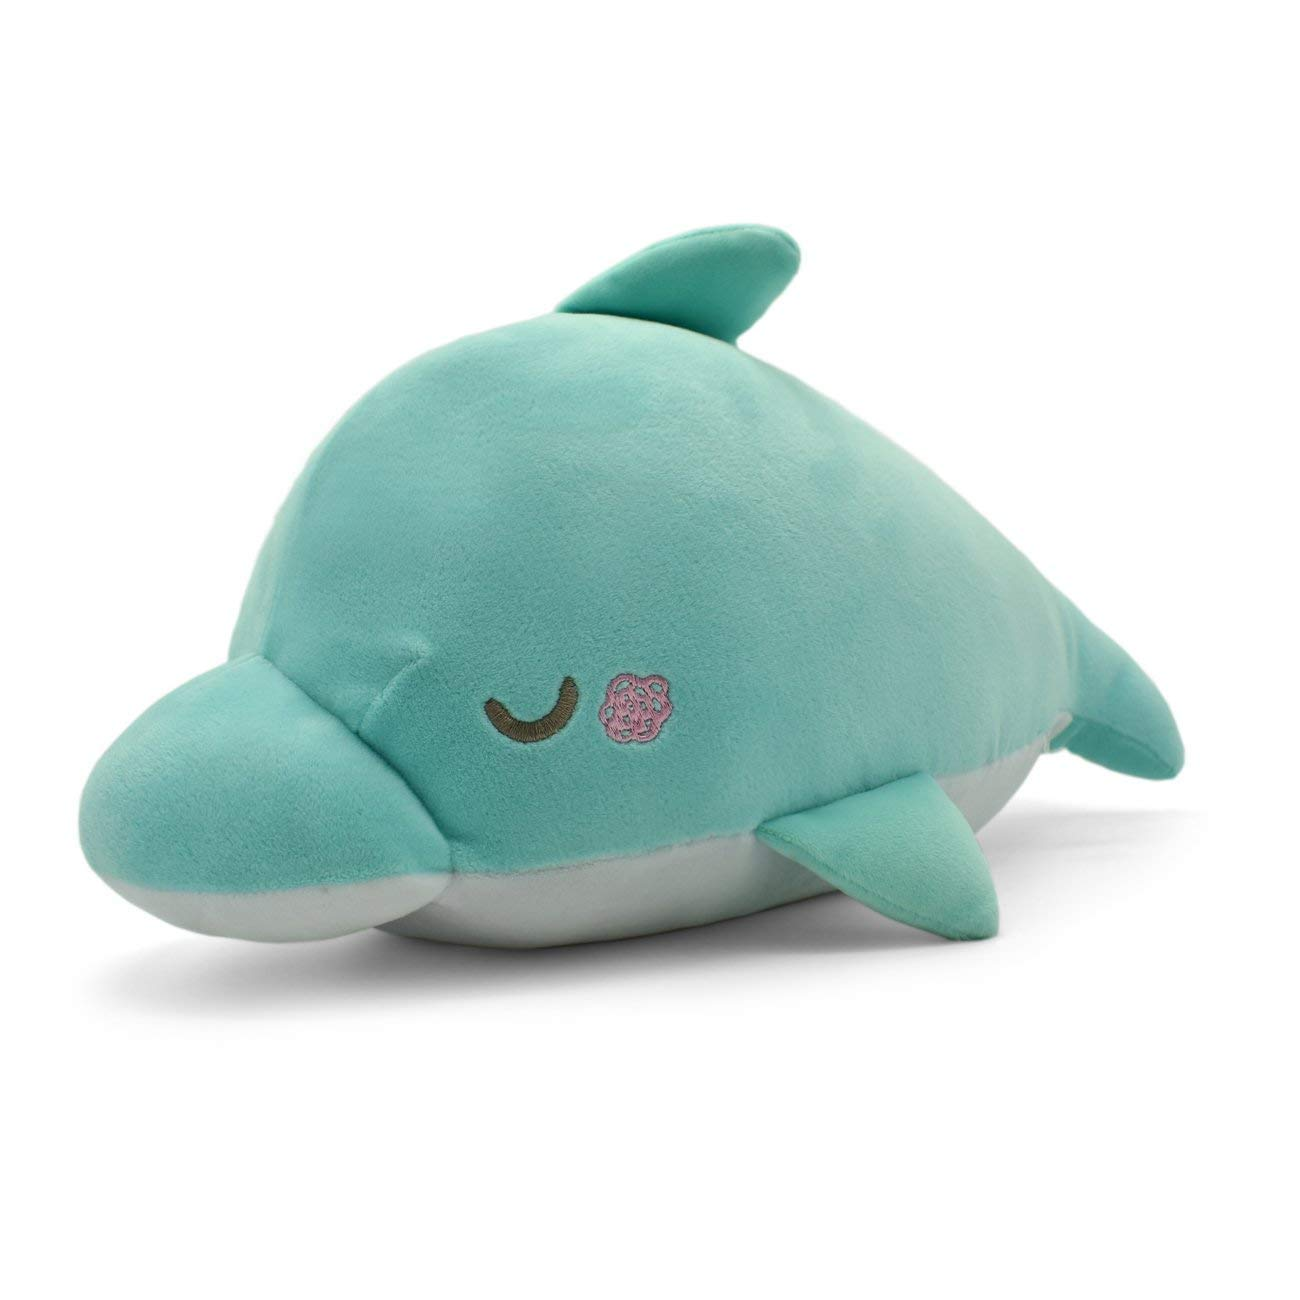 YINGGG Plush Cute Dolphin Pillow Stuffed Cotton Soft Animal Toy Cyan Gift for Friend Kids Adult On Halloween Christmas S